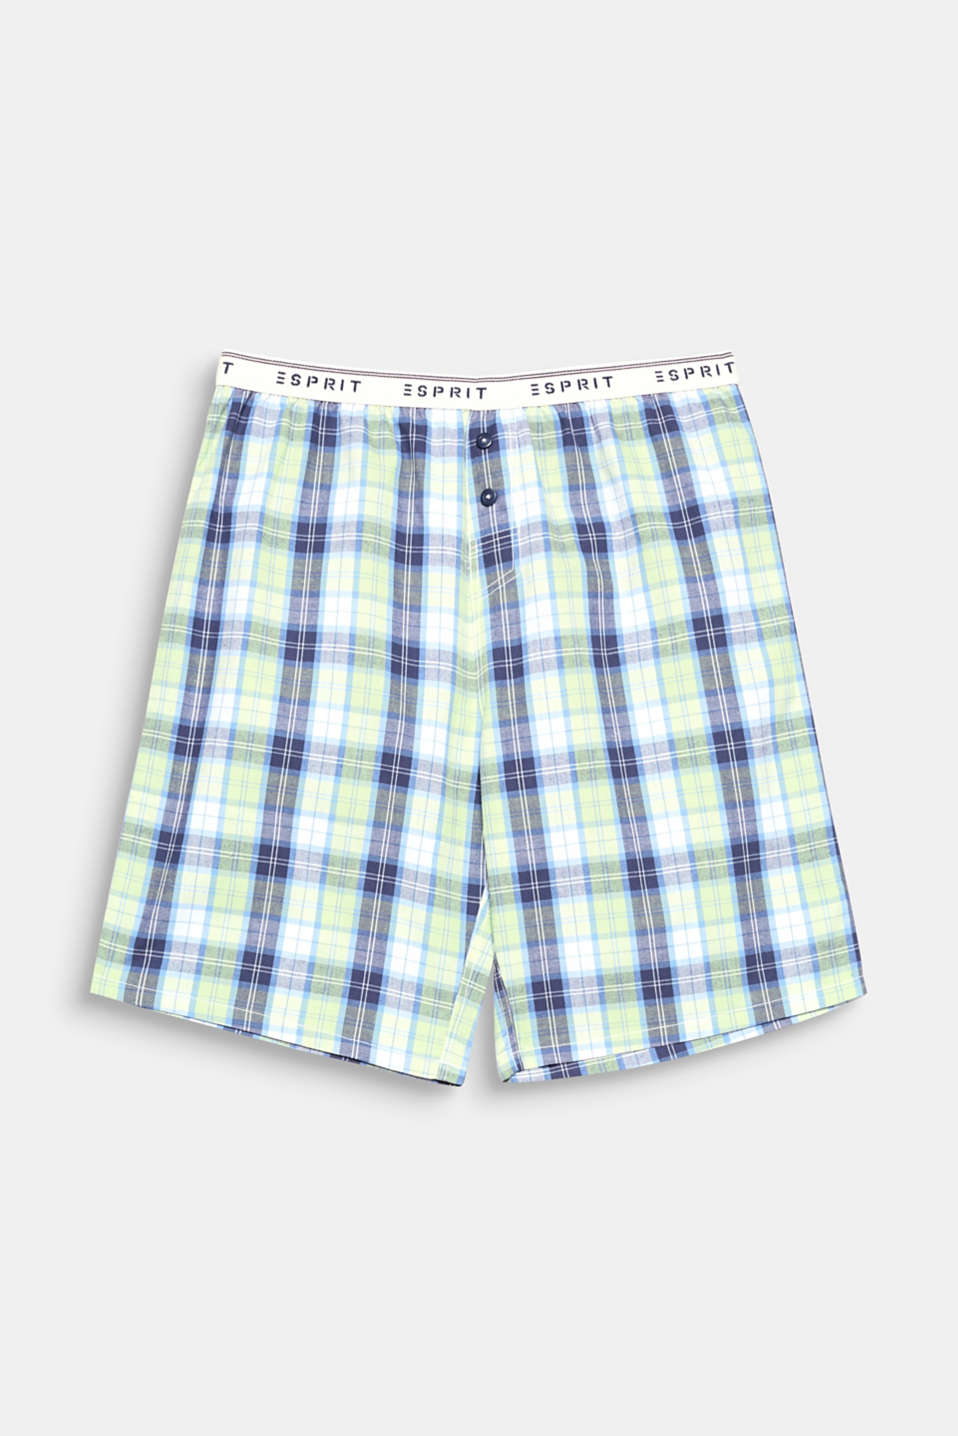 Cool style for warm nights: you can't go wrong in these cotton shorts with a fashionable all-over check pattern!